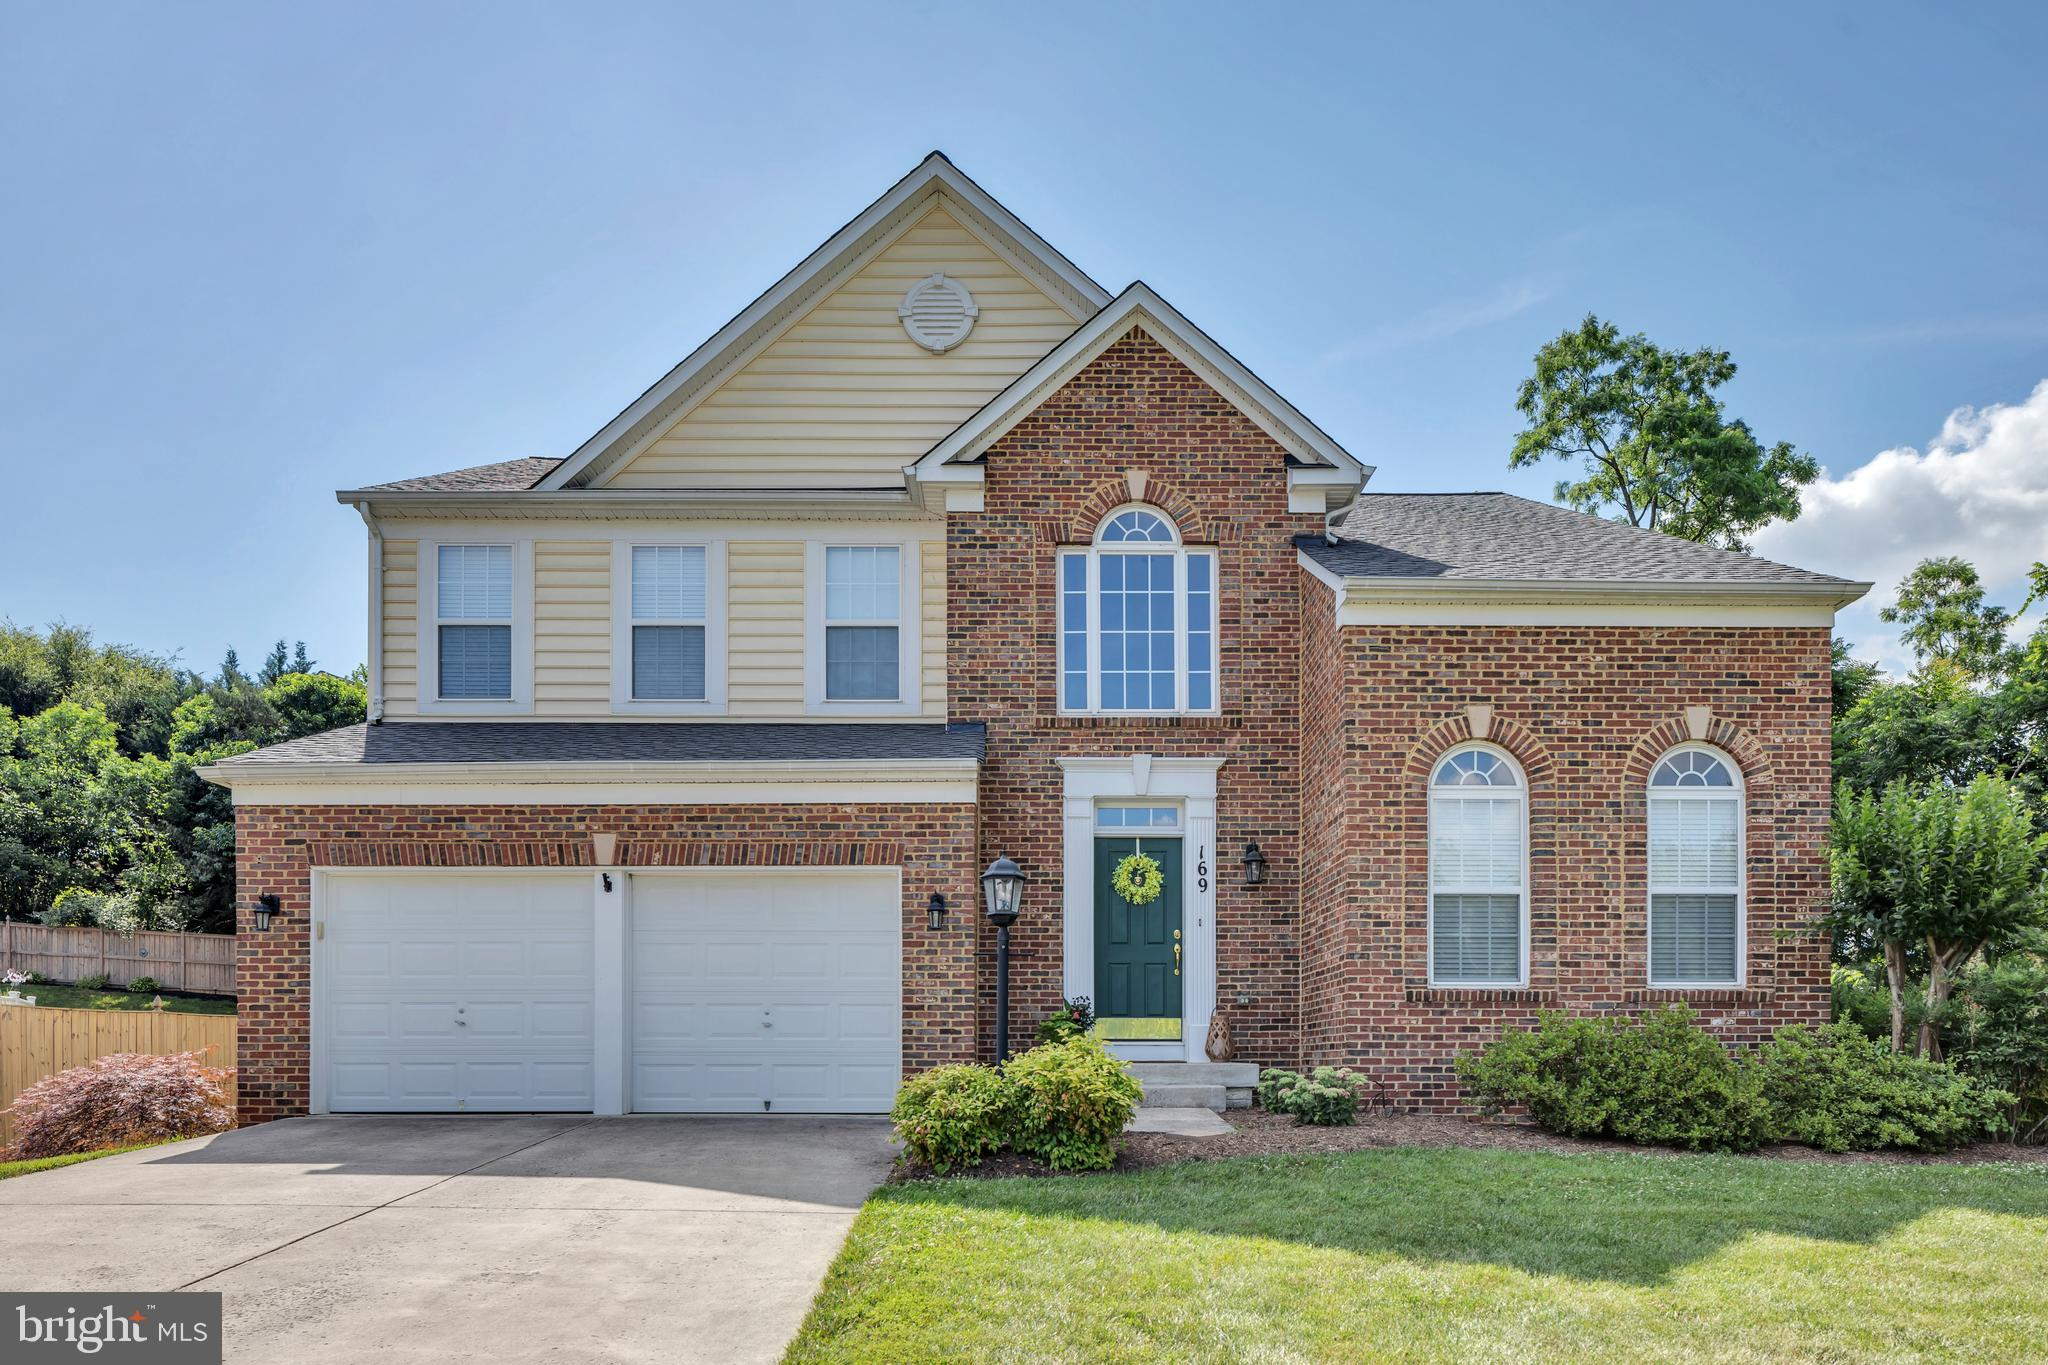 Pride of ownership is what you will find in this 4 Bedroom 3.5 Bath Colonial. If space is what you are looking for, look no further. This home offers approximately  3,986 sq ft of living space on 3 floors.  It offers a brand new roof, hot water heater, and newer HVAC. Enjoy entertaining on this large 16 x 24 deck. The lot is .41 acres and is the last home on the street. No thru traffic. The large primary bedroom offers a large walk-in closet (13x7) tray ceilings, bath with double sinks, soaking tub, shower plus a linen closet.  The laundry room is on the  3rd floor that also has a closet for storage. The lower level has a bar with a granite ountertop, sink , and refrigerator. Nice space for entertaining guests. The garage is a 21x20 and has plenty of extra room for storage. This home has so much to offer. You will not be disappointed. Come and take a look today!!